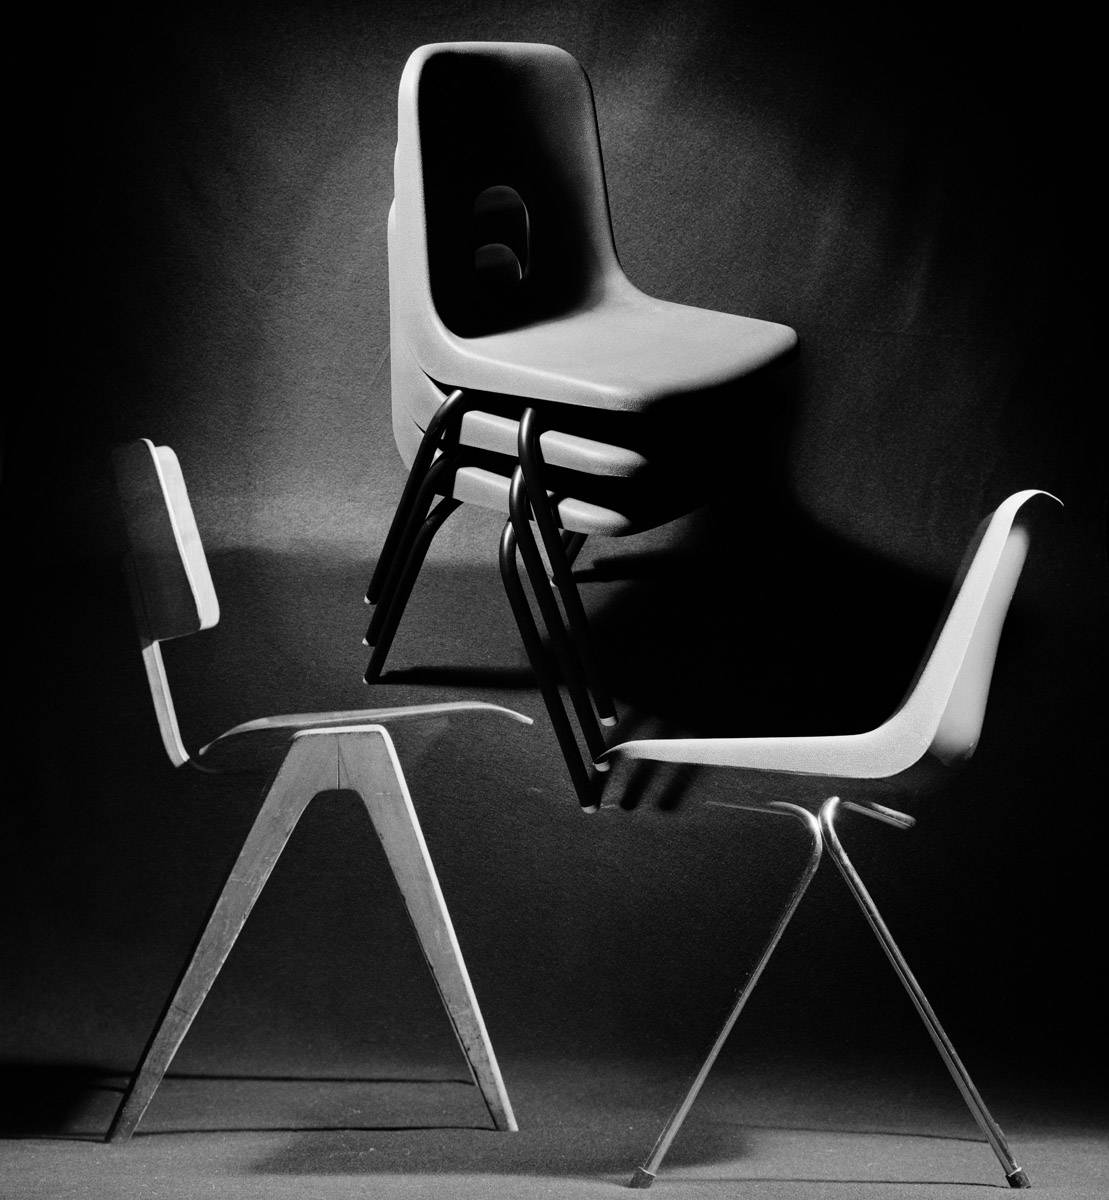 Chaise empilable Robin Day - 1958 - Photo Carol-Marc Lavrillier-75